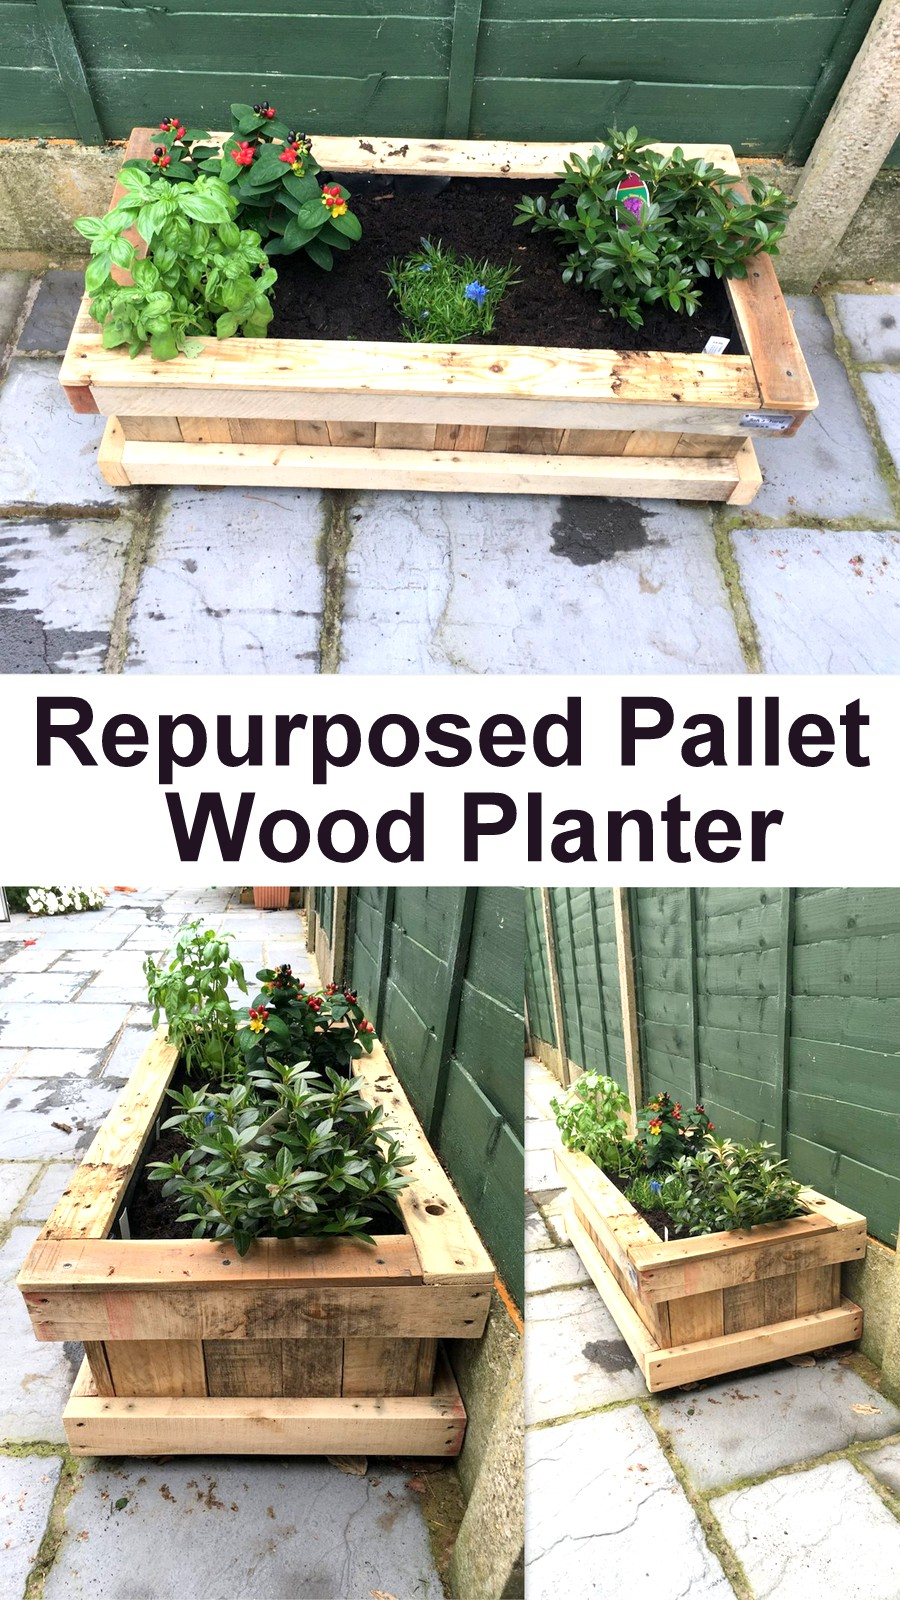 Repurposed Pallet Wood Planter